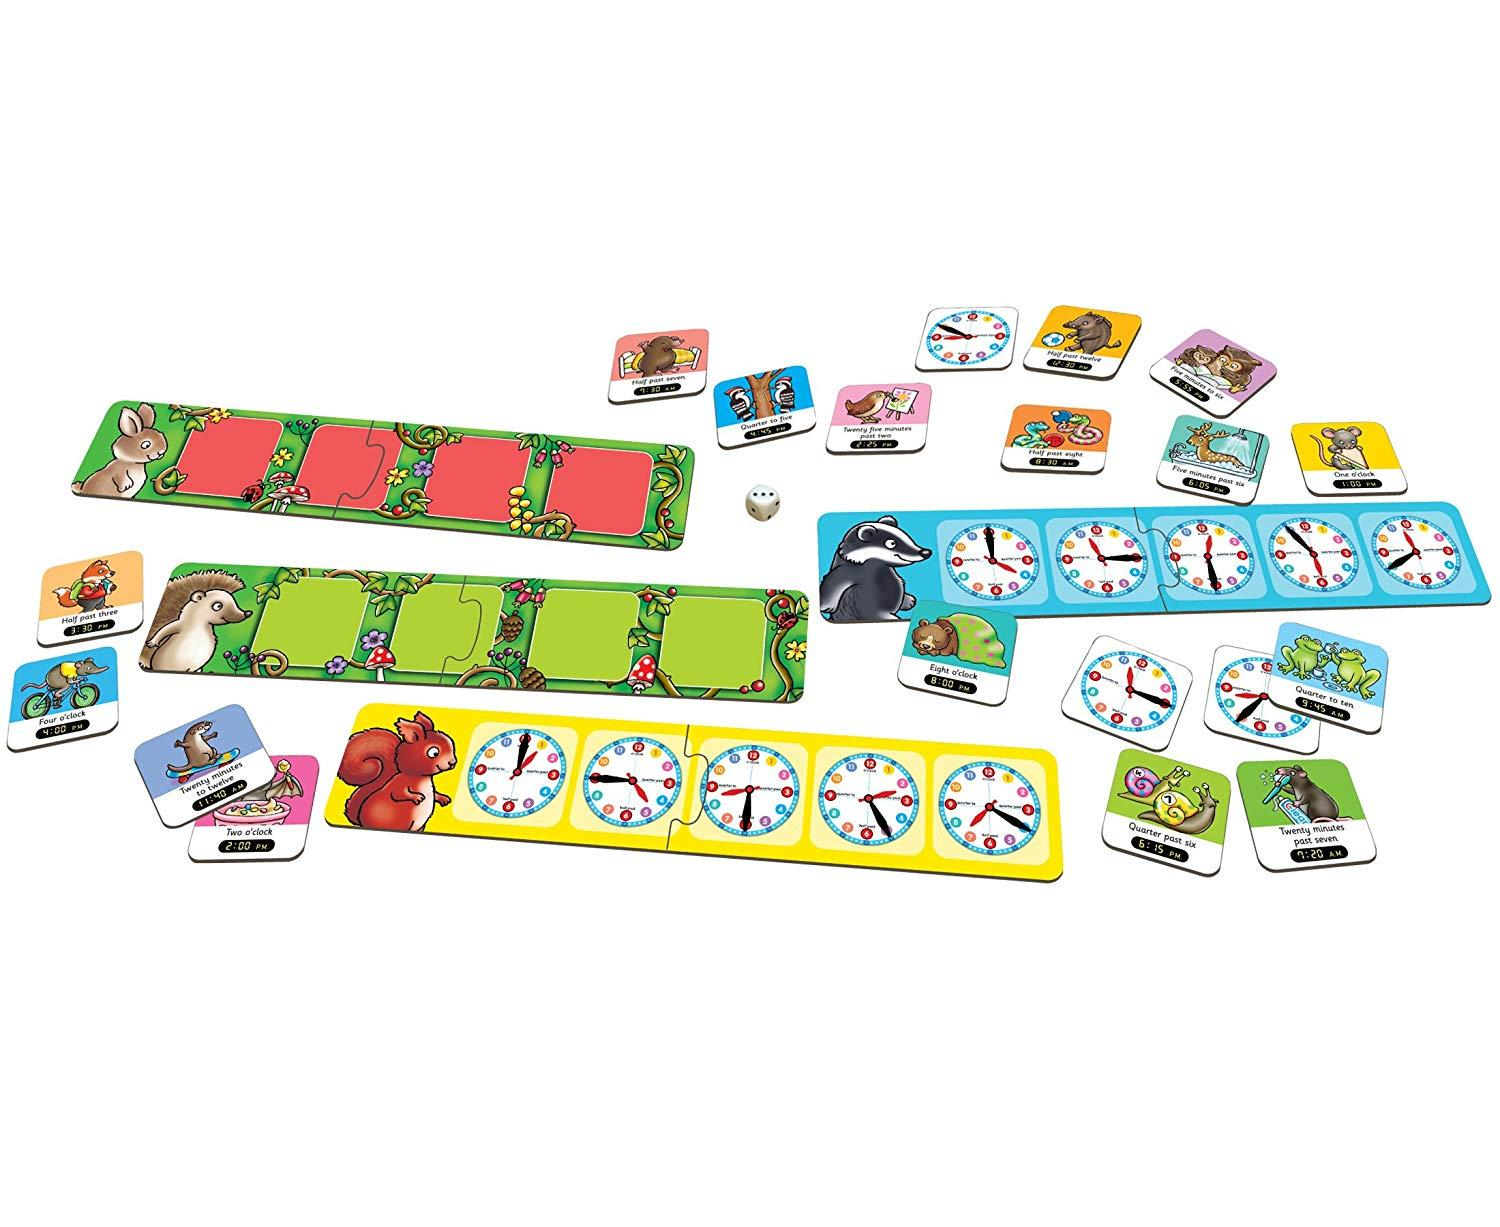 thumbnail 317 - Orchard Toys Educational Games For Kids Choose Game From Drop Down Menu